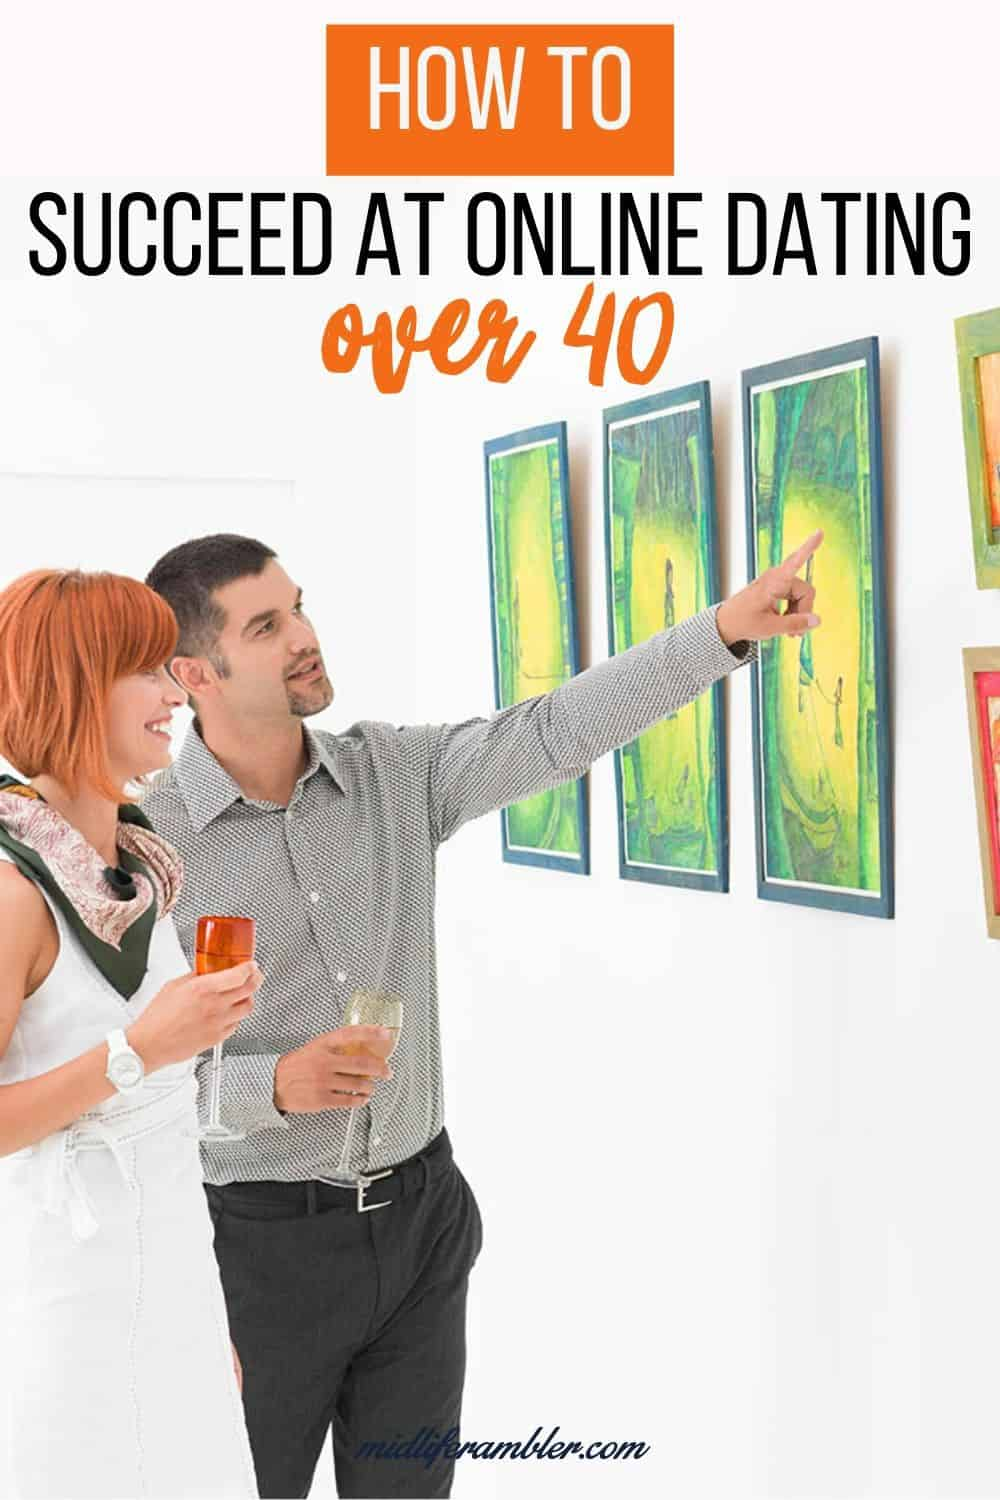 How to Succeed at Online Dating Over 40 14